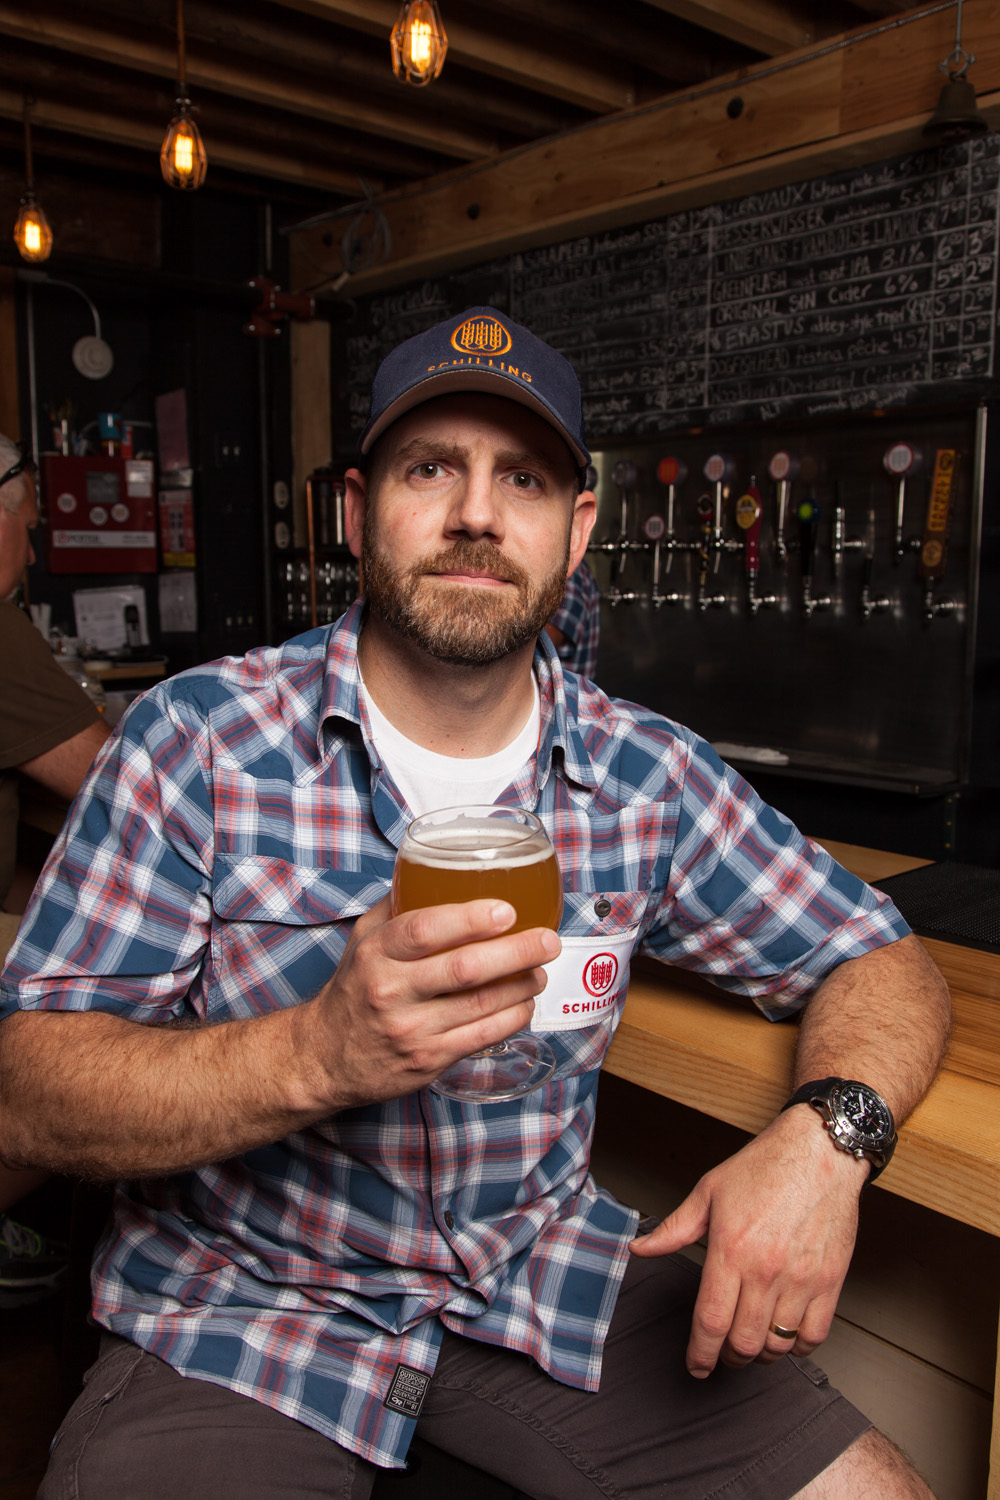 John Lenzini, Brewmaster at Schilling Beer Co. Littleton, NH Established in 2013